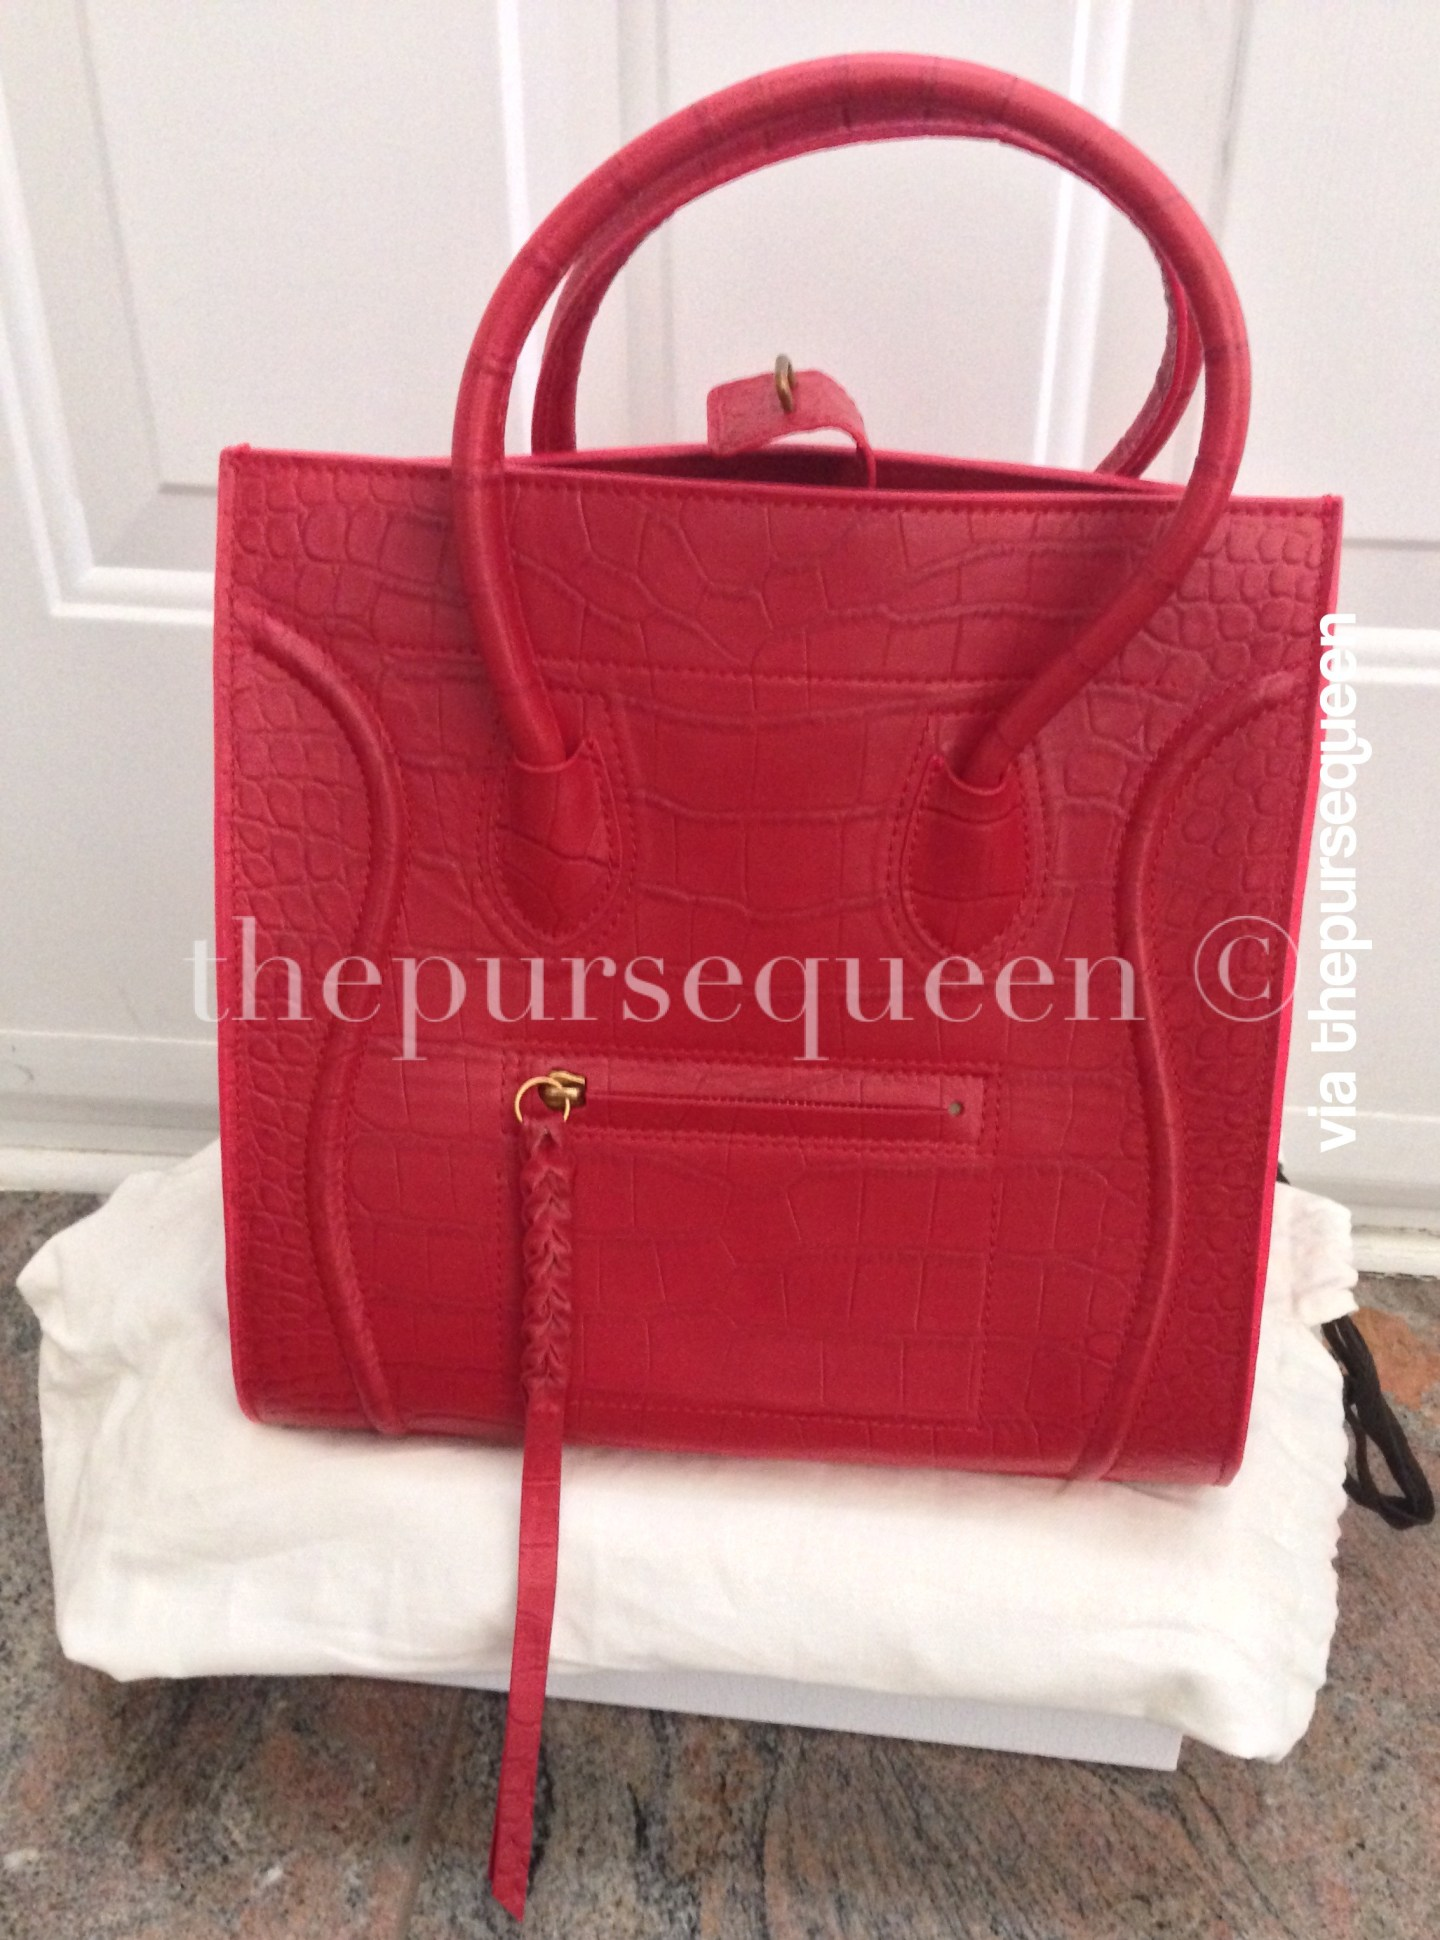 celine-phantom-replica-bag-review